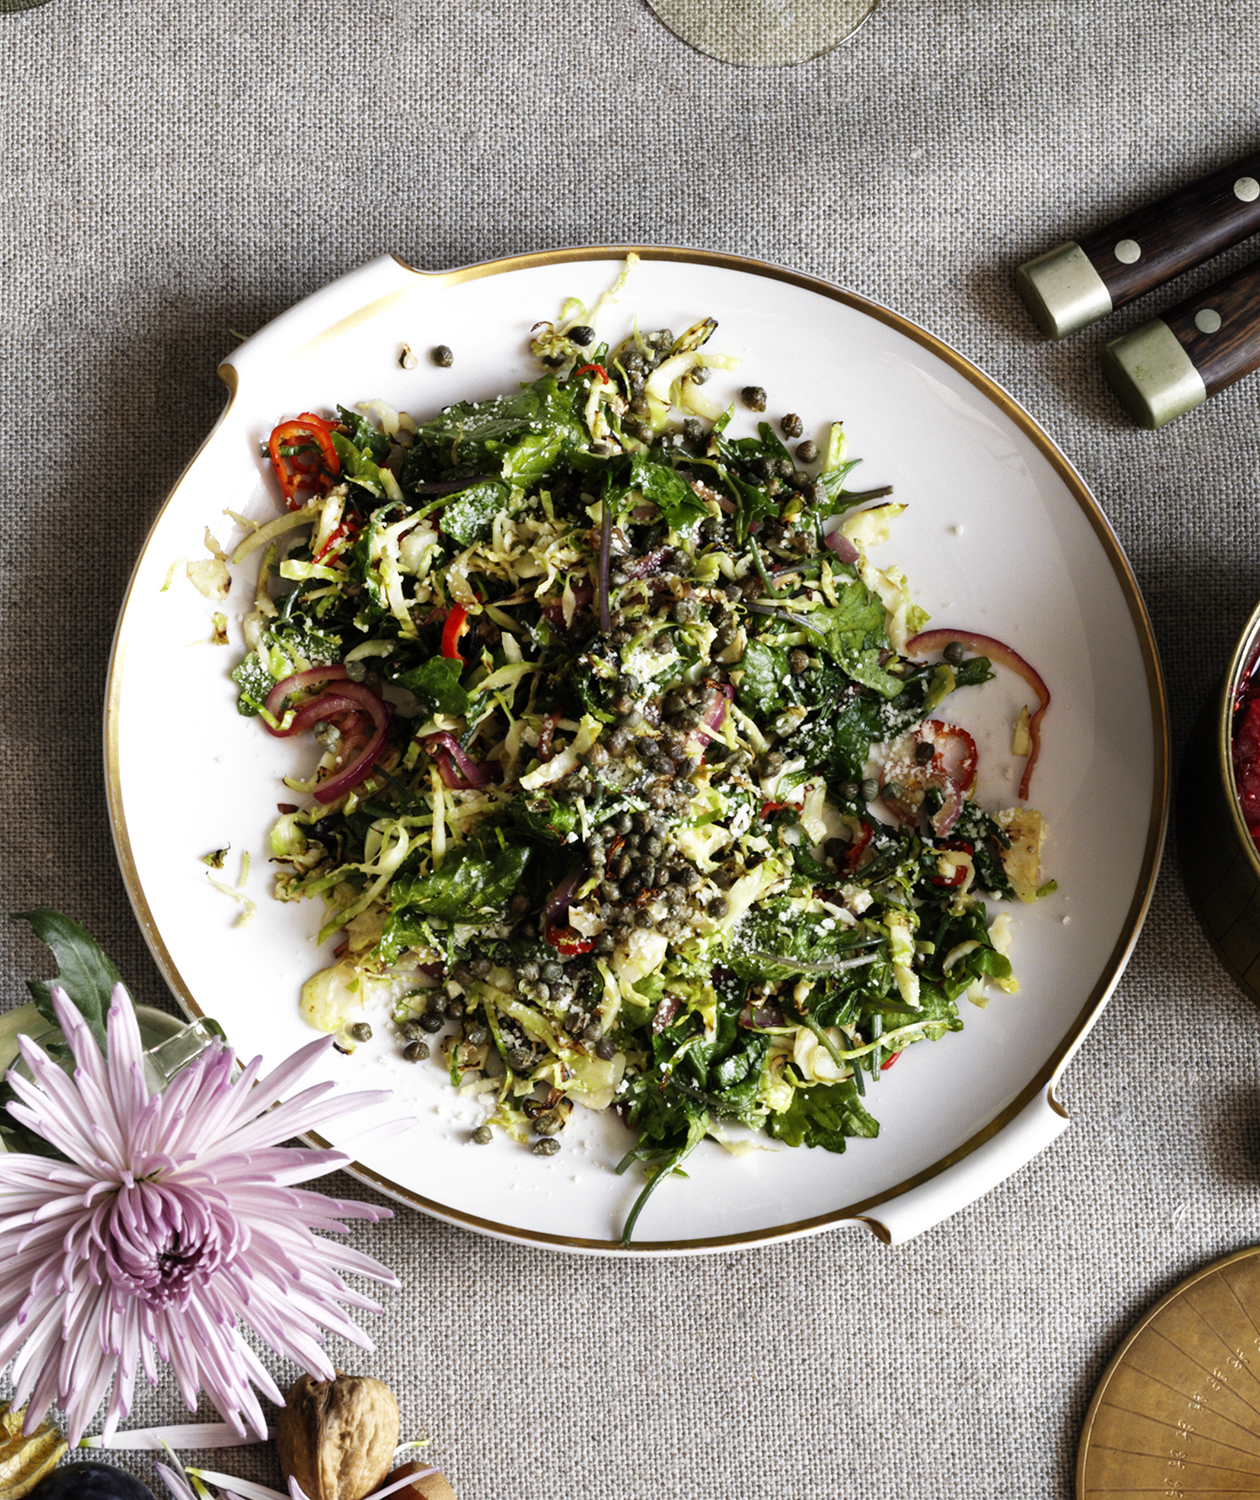 Caramelized Brussels Sprouts and Kale With Crispy Capers